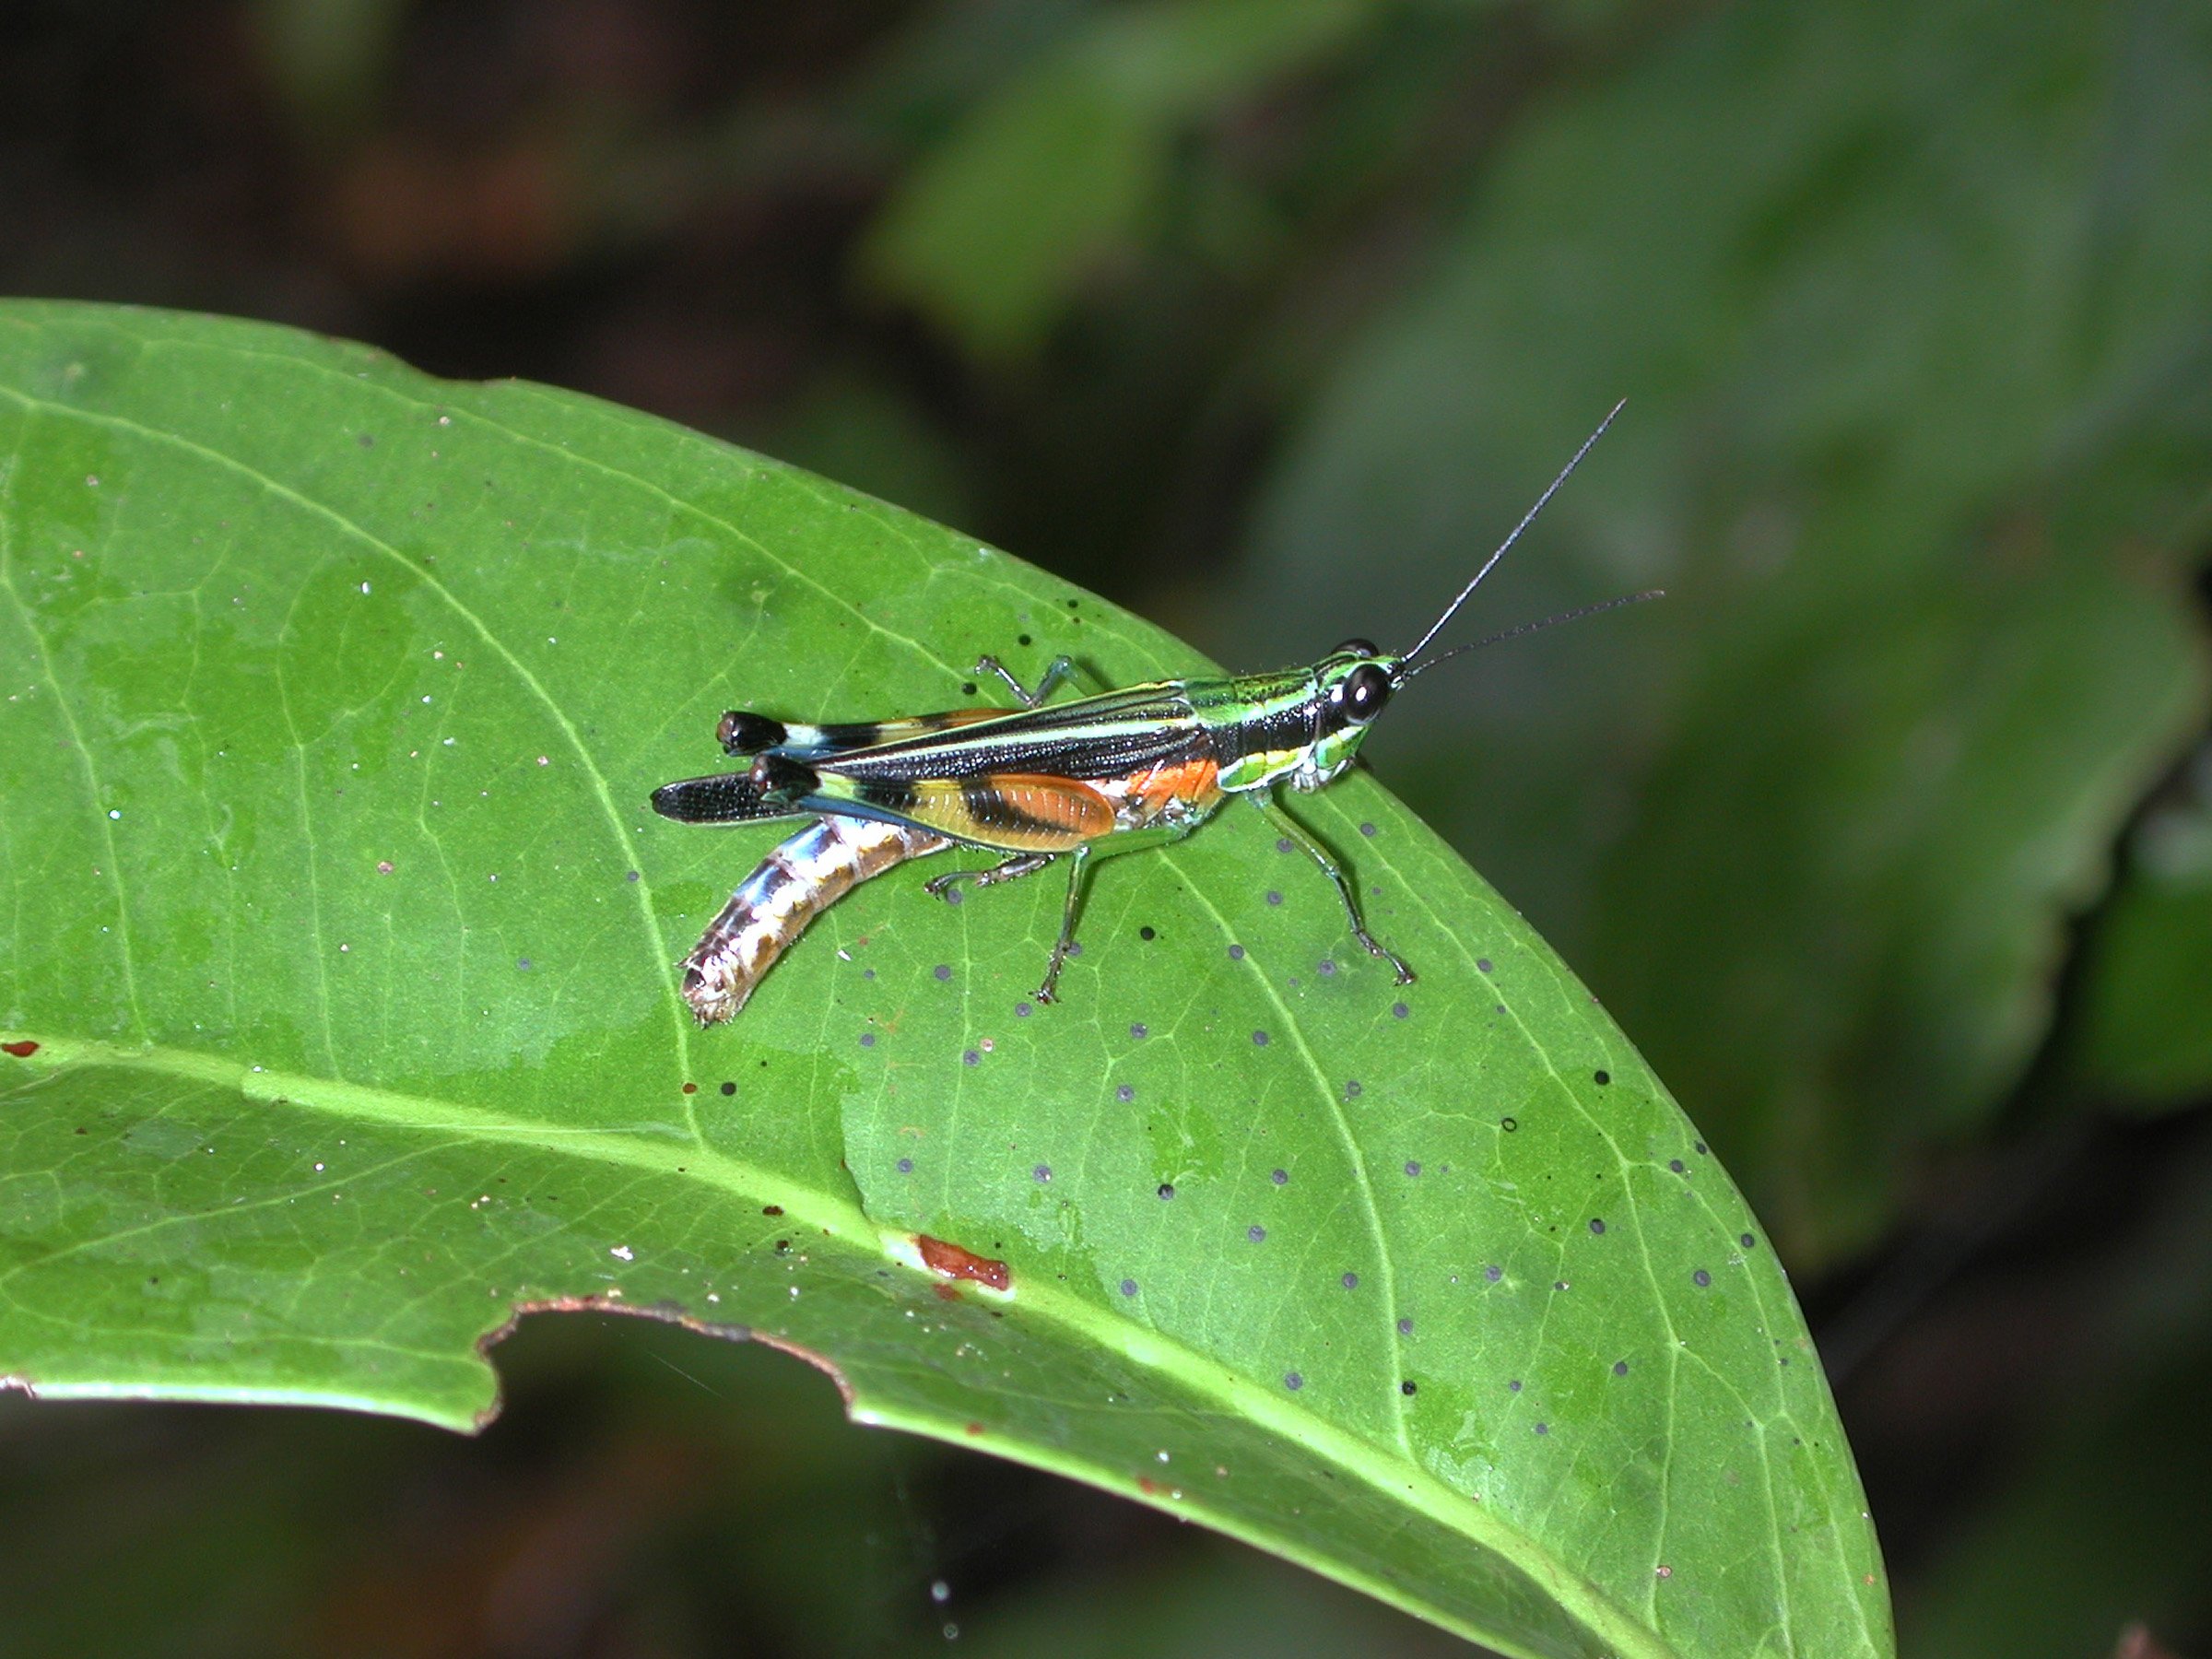 A new University of Utah study found that diversity of rainforest trees actually increases because insects, including grasshoppers like this, eat trees that otherwise would dominate the ecosystem.